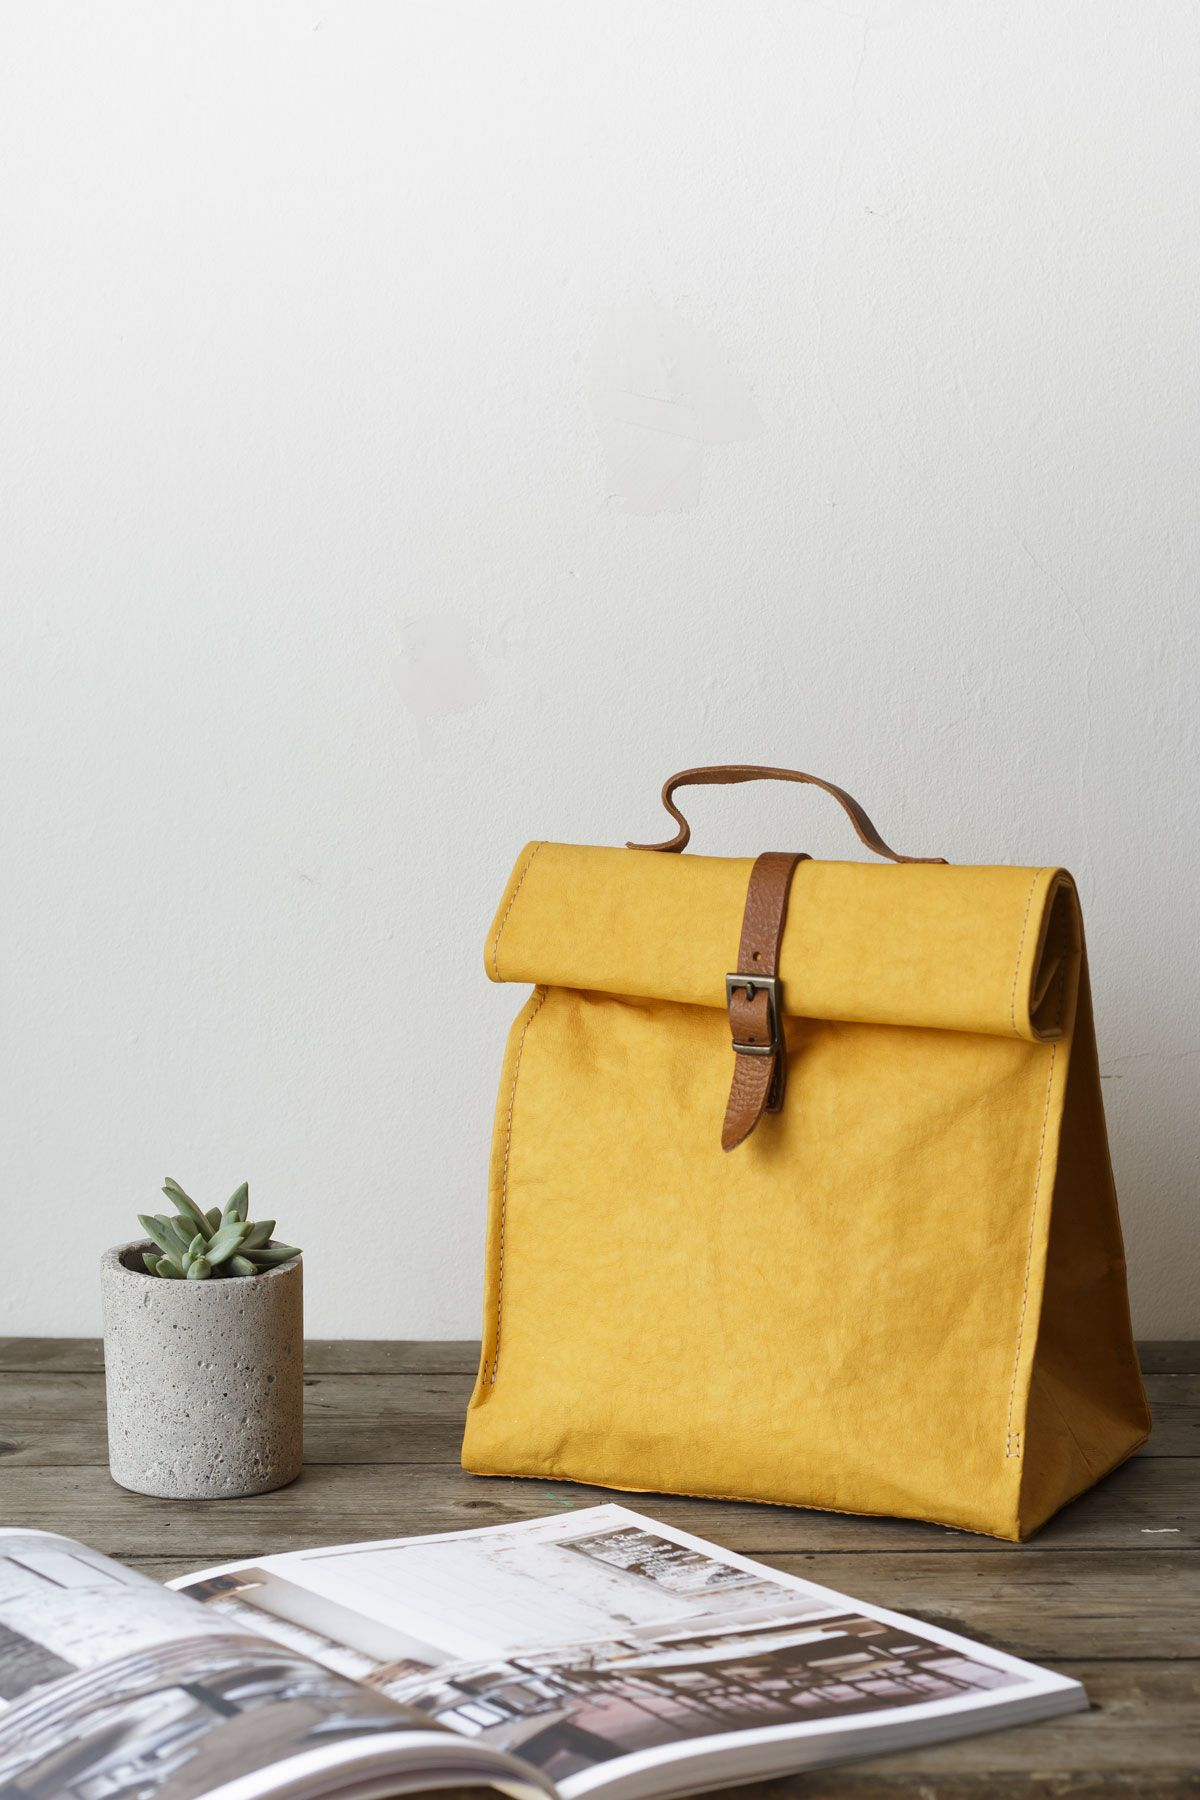 A Unique And Stylish Women S Lunch Bag The Perfect Accessory For Lady Who Lunches Or Man Not Afraid To Rock